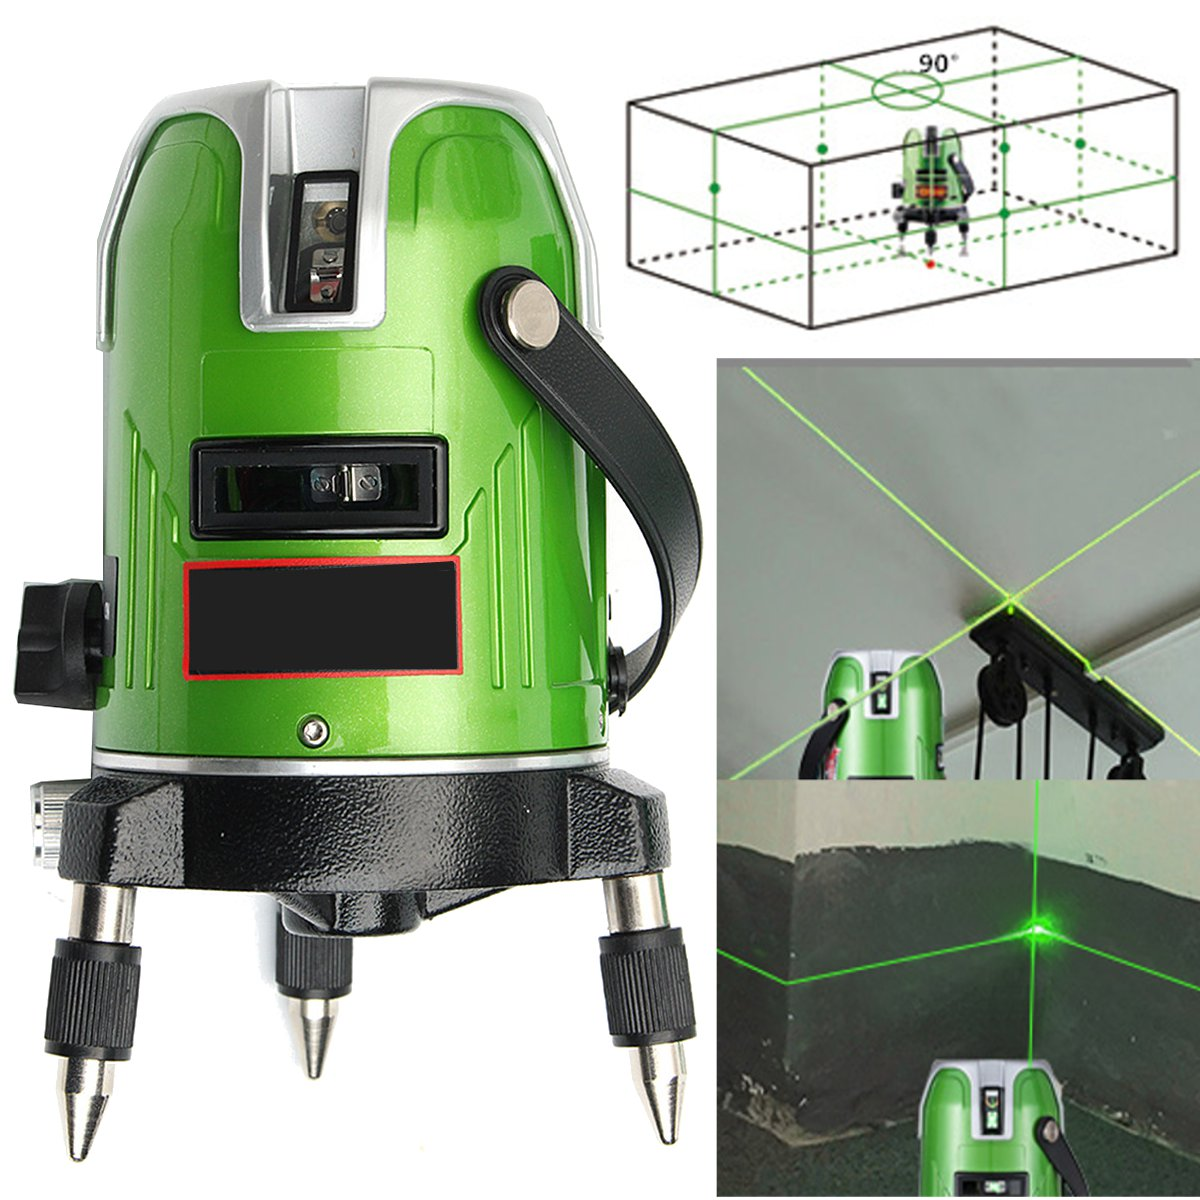 EK-468GJ Green 5 Line 6 Point Laser Level 360 Rotary Line Self Leveling Laser Level